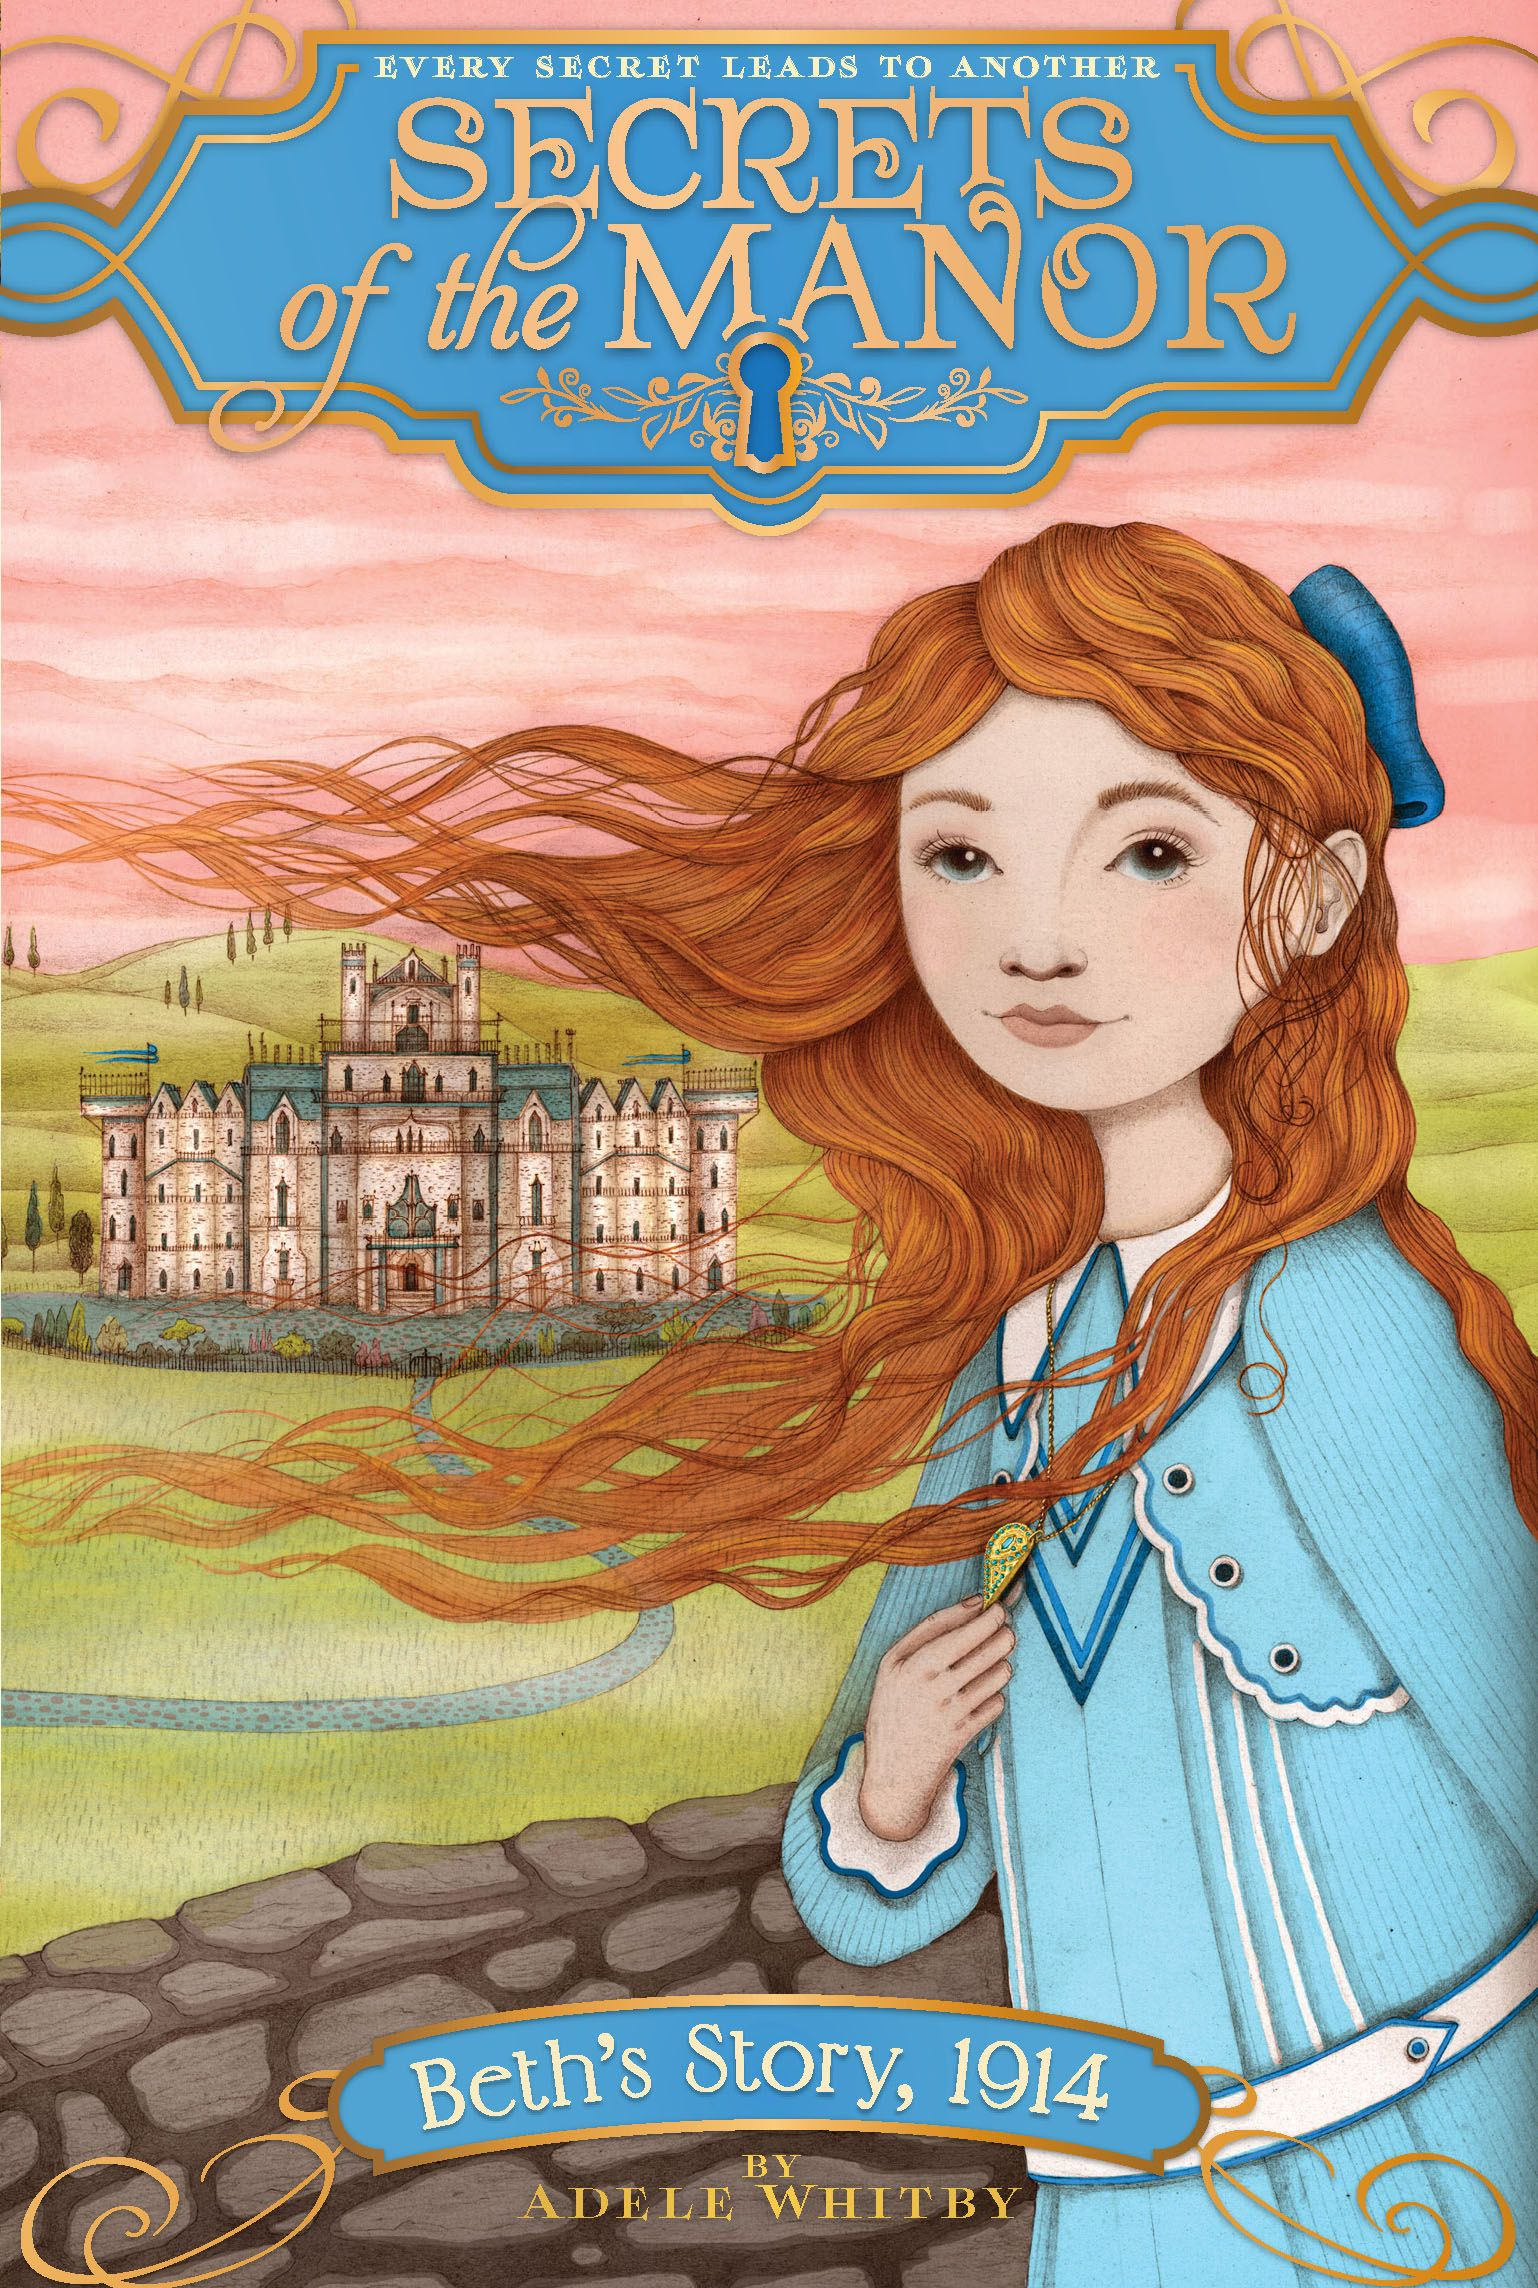 Beth's Story, 1914 (Secrets of the Manor) by Adele Whitby - EL - ADVISABLE Lady Beth of Chatswood Manor is excited to celebrate her twelfth birthday because she will inherit a family heirloom called the Elizabeth necklace.